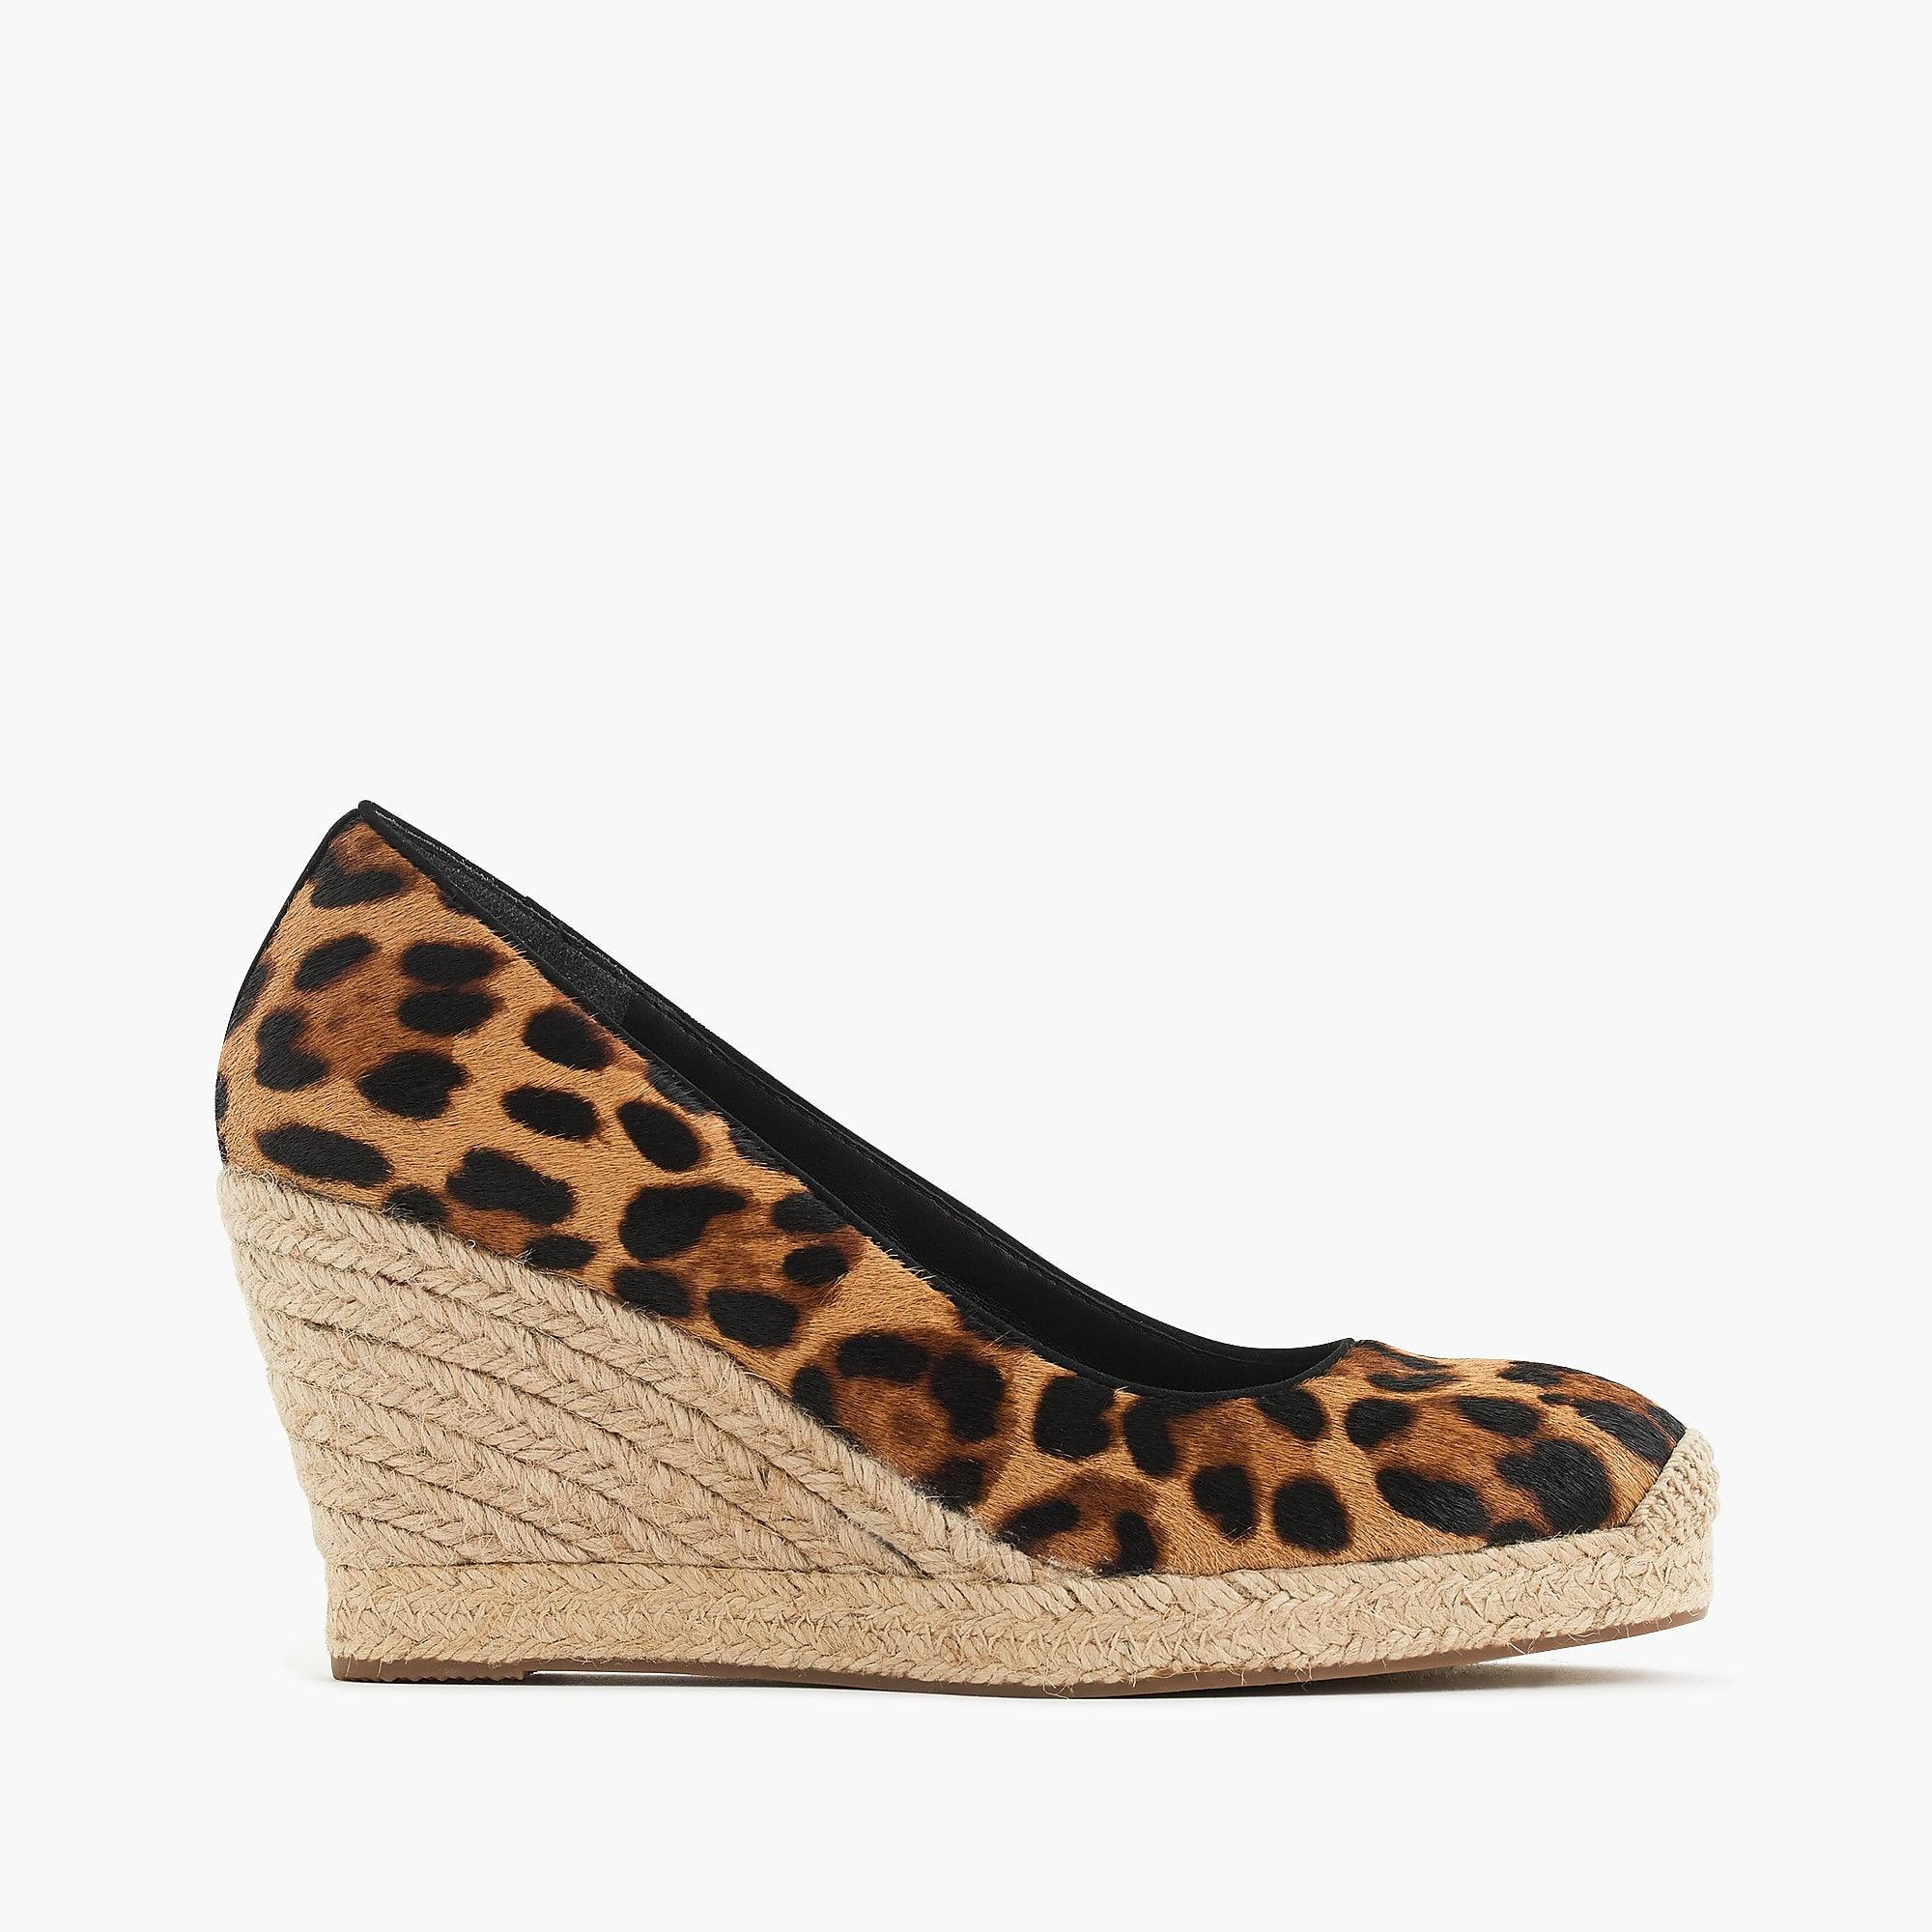 ccb592a79ea J.Crew Seville Espadrille Wedges In Leopard Calf Hair in Brown - Lyst